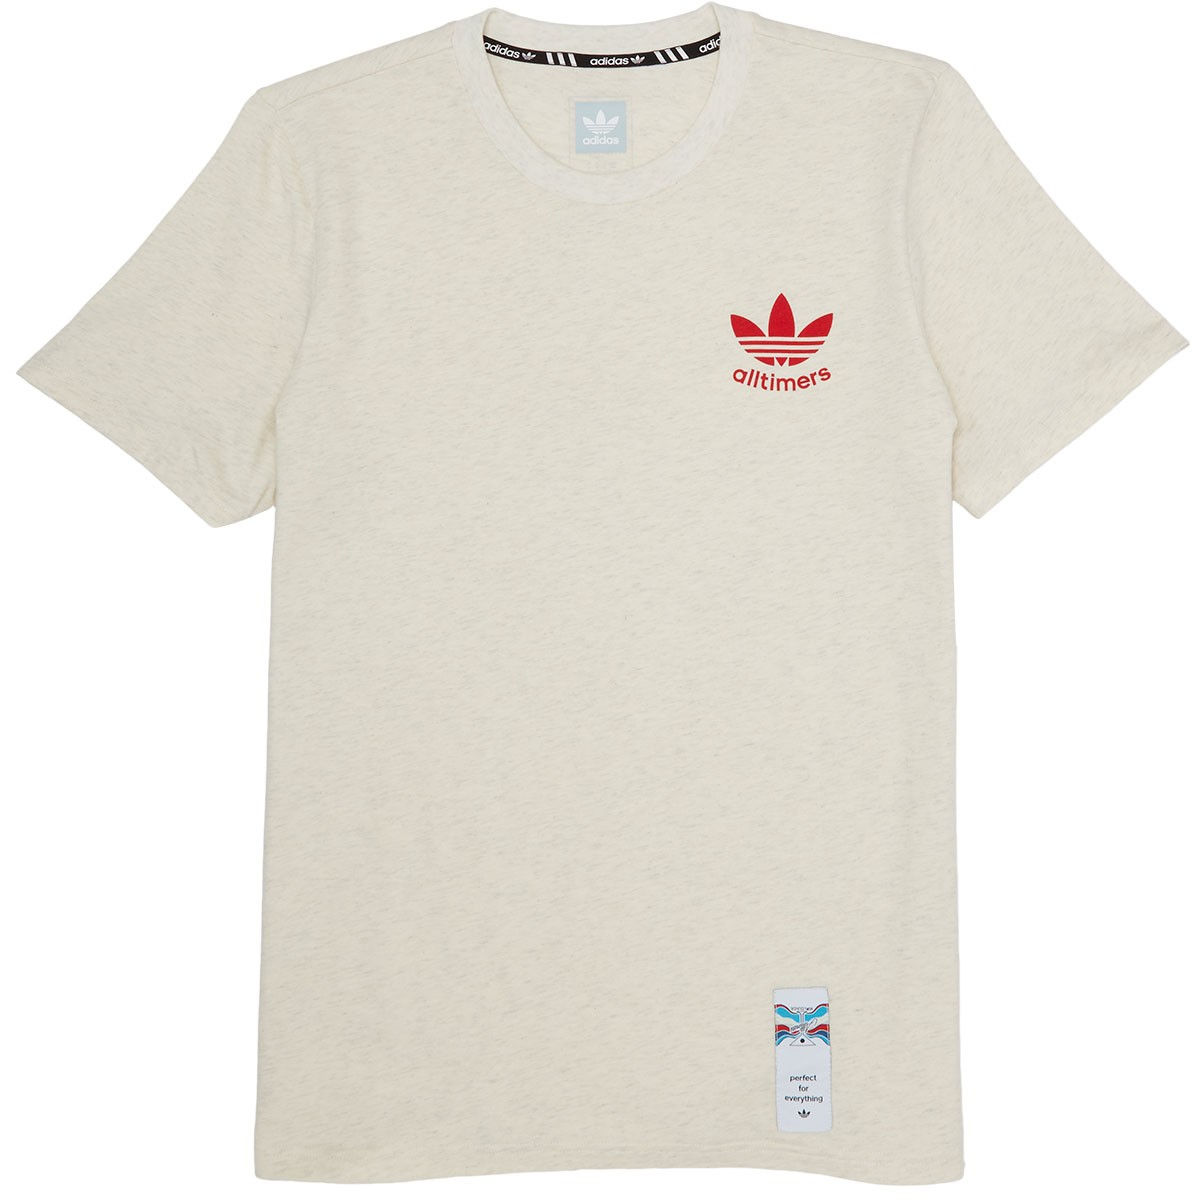 adidas off white shirt Shop Clothing & Shoes Online